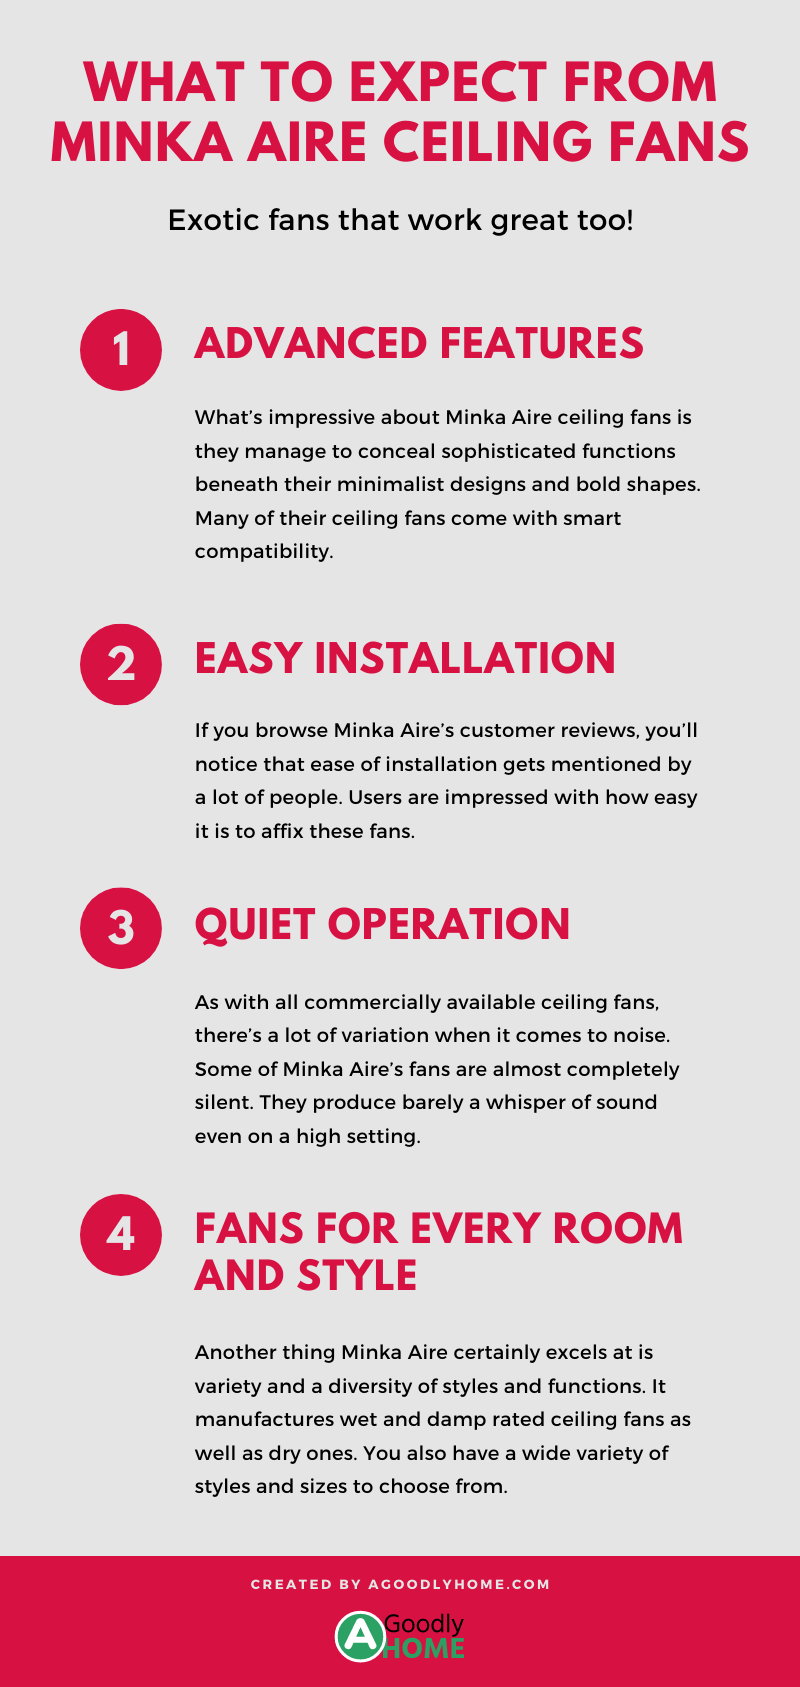 what to expect from Minka aire ceiling fans